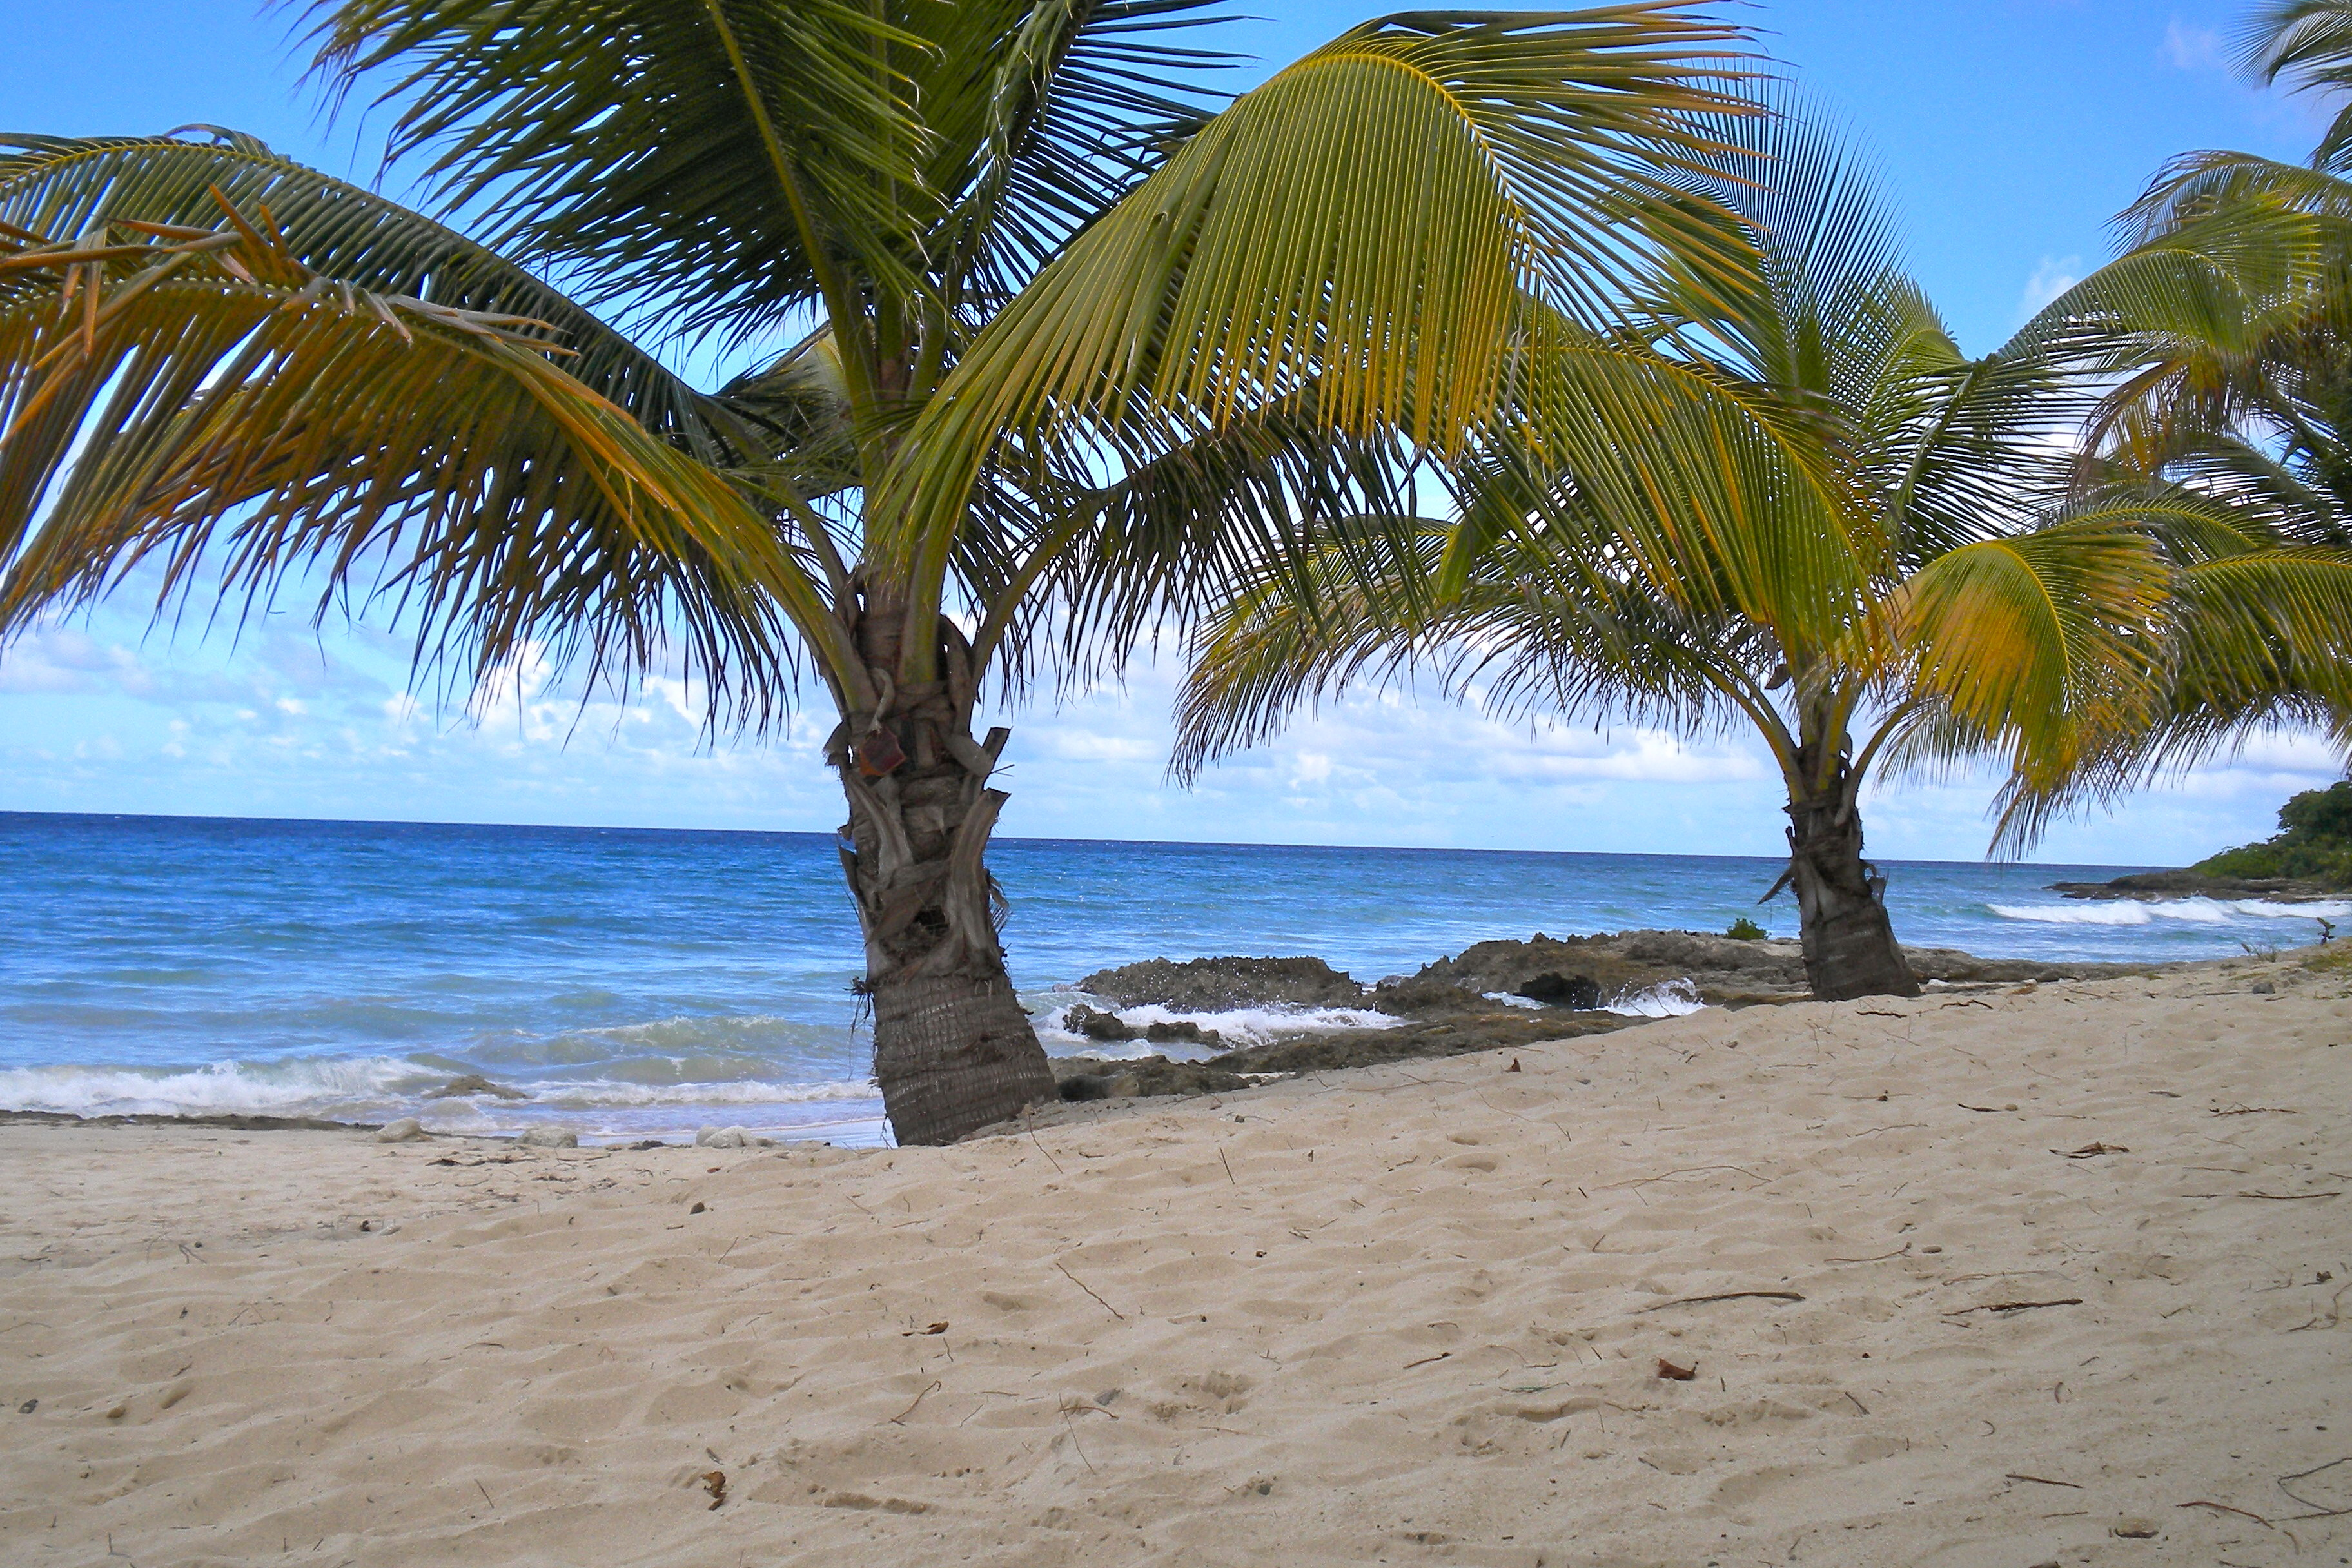 Ways To Explore St Croix - All inclusive resorts in st croix